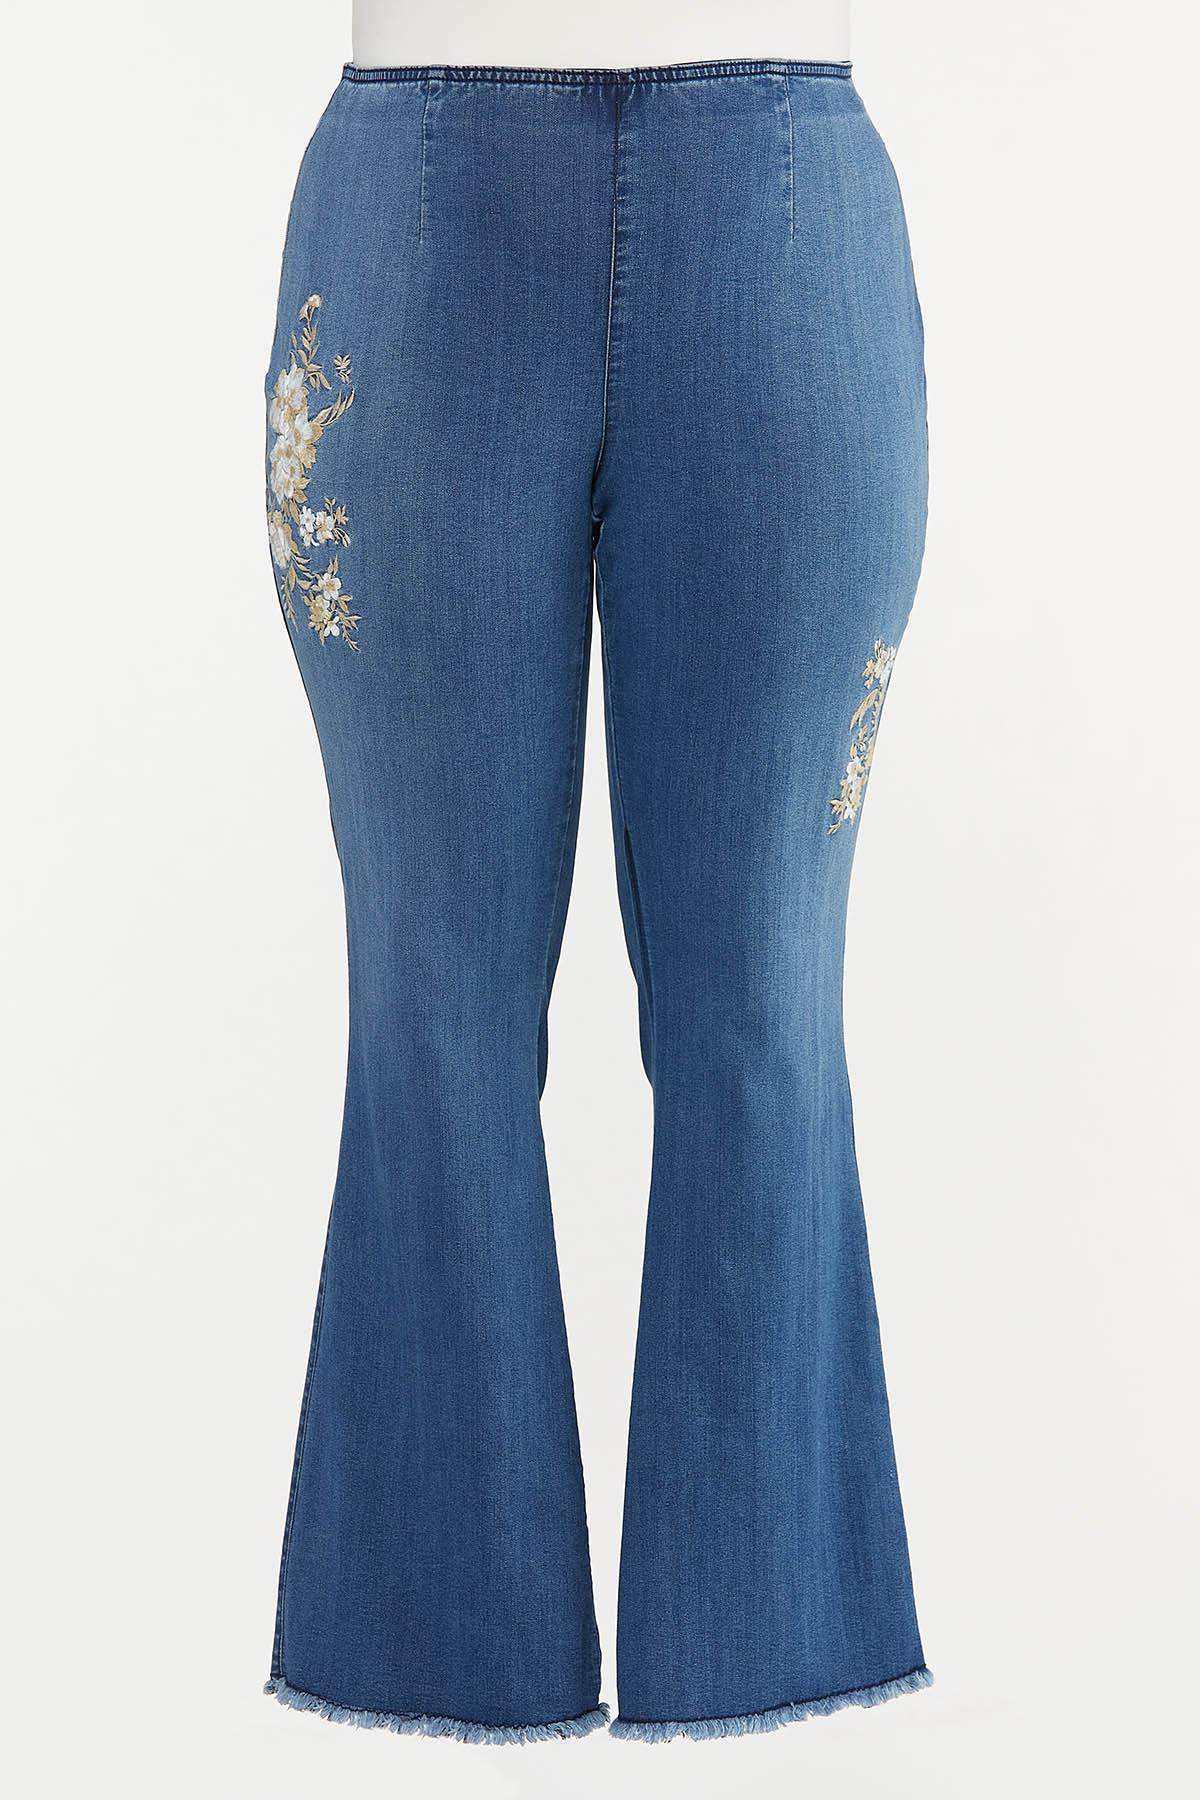 Plus Petite Floral Embroidered Flare Jeans